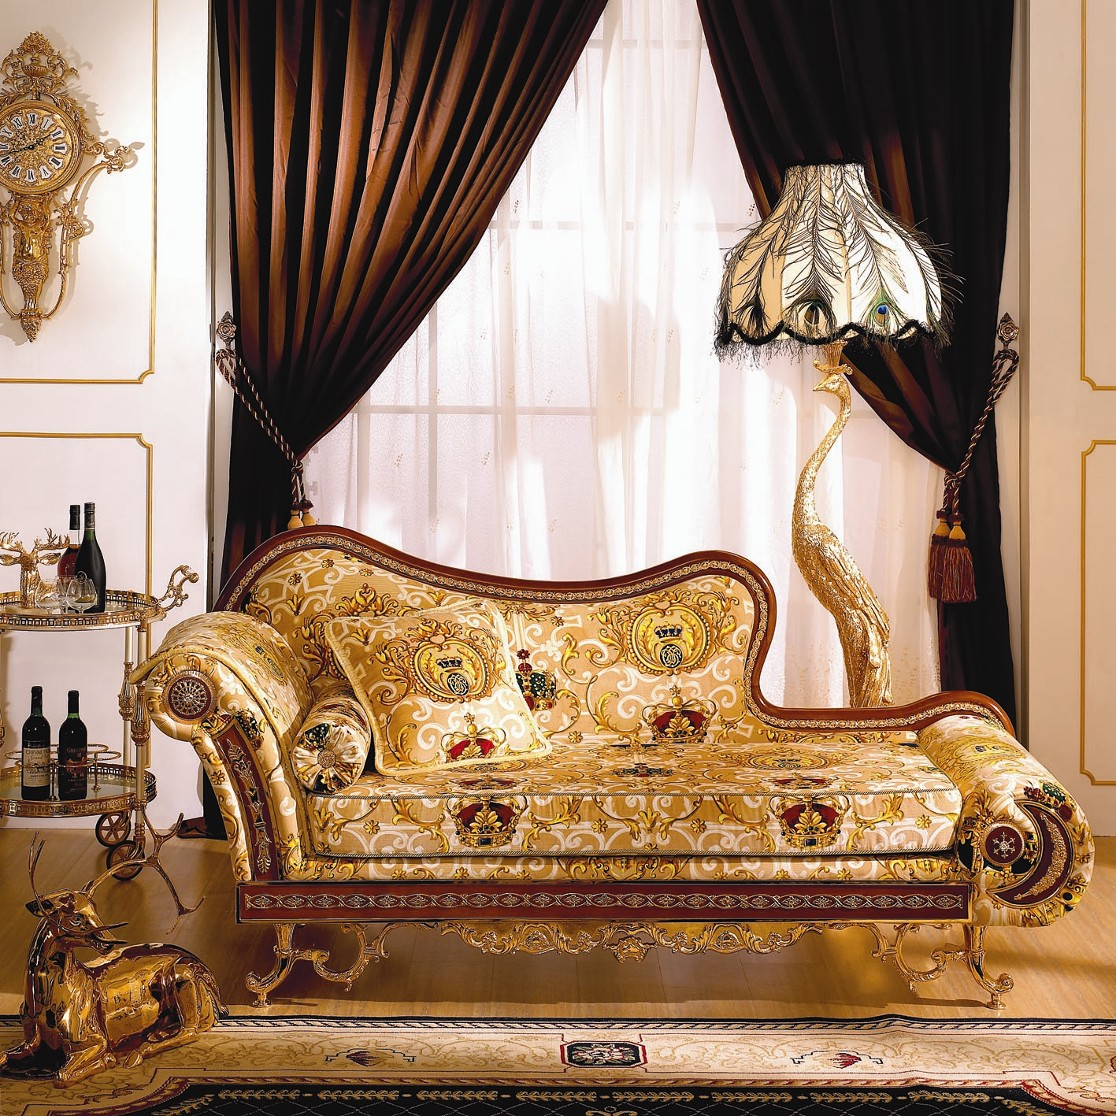 Chaise Medieval Luxury Interior Design Luxury Elegant And Modern Old